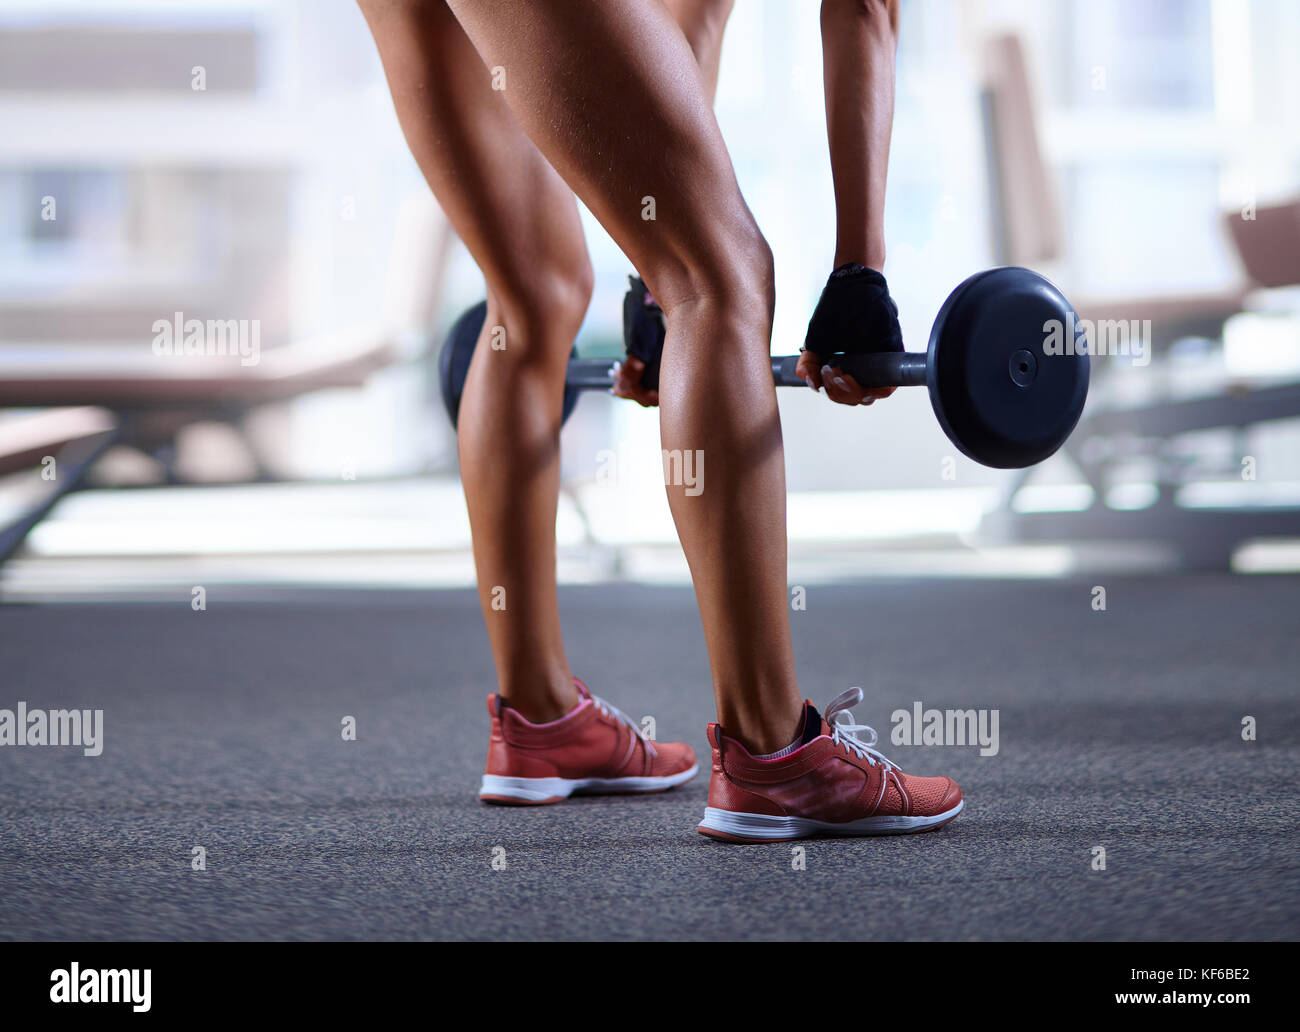 Woman working out in the gym - Stock Image